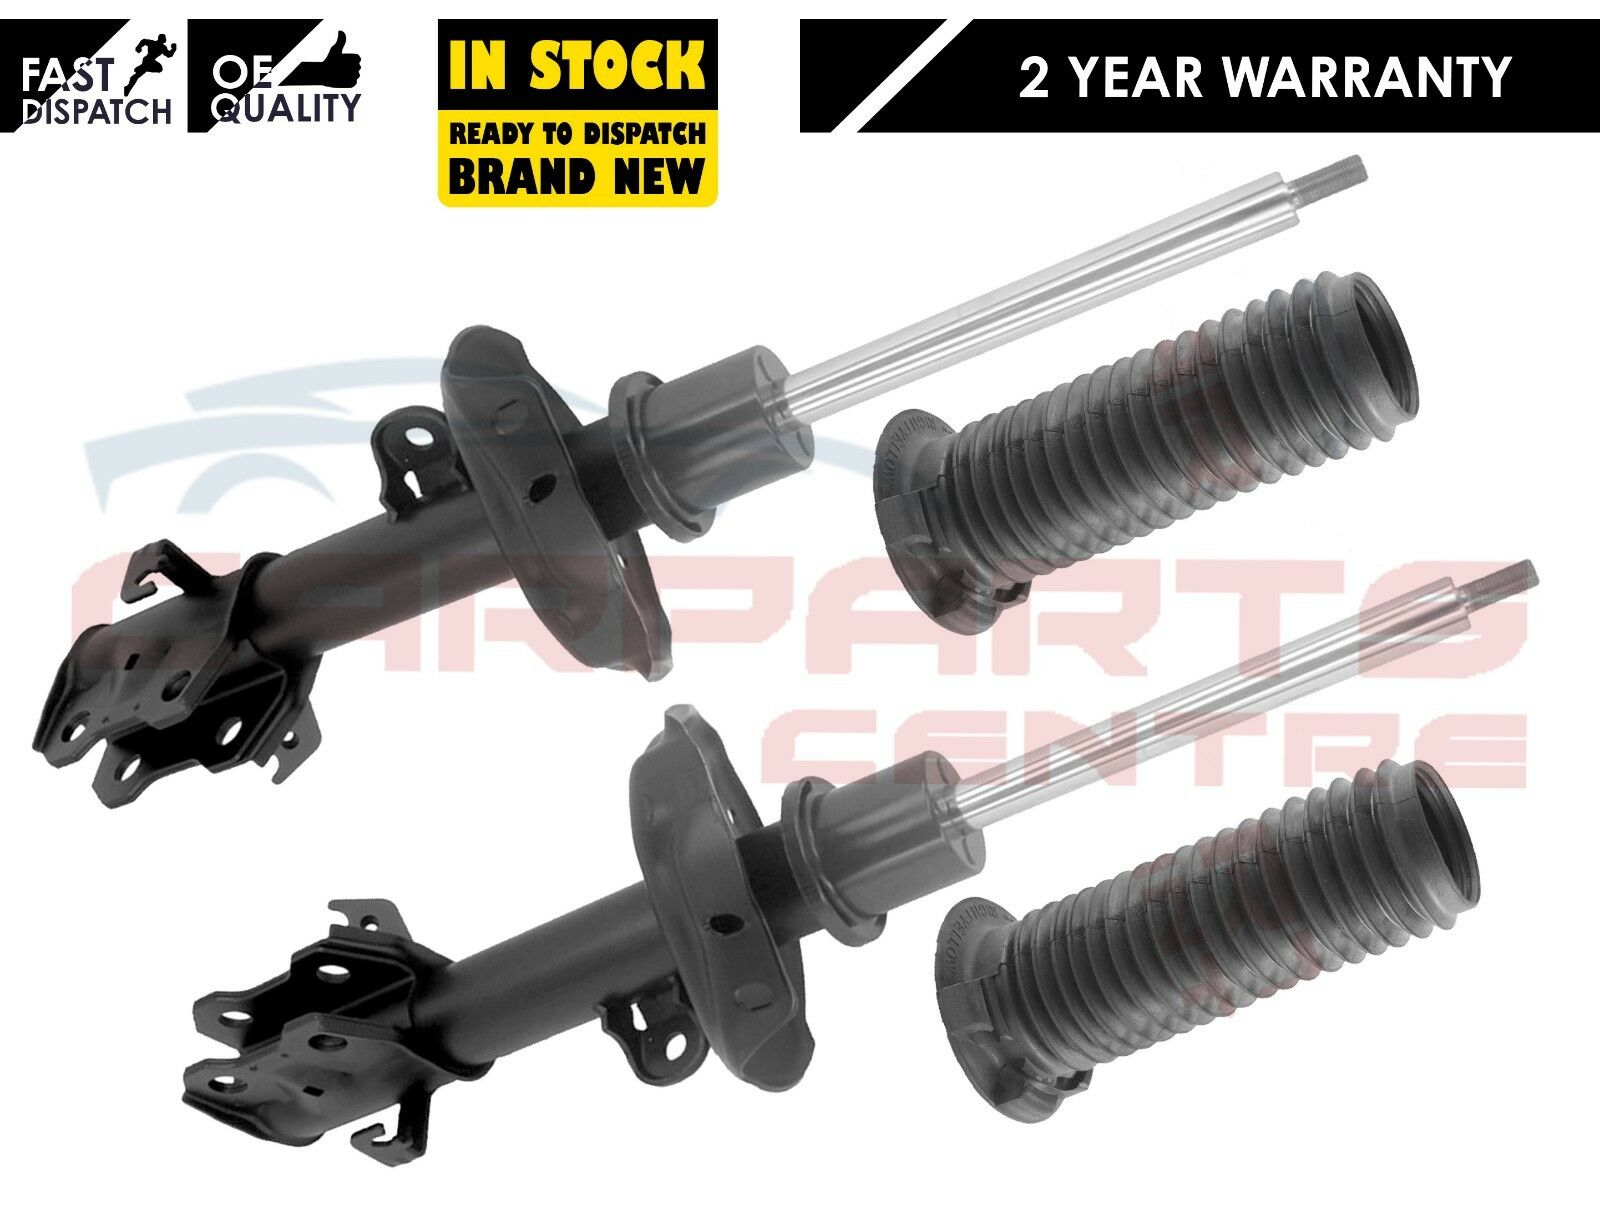 FRONT SHOCK ABSORBER STRUT RUBBER BOOT DUST COVER PAIR NEW FOR HONDA CRV 2007